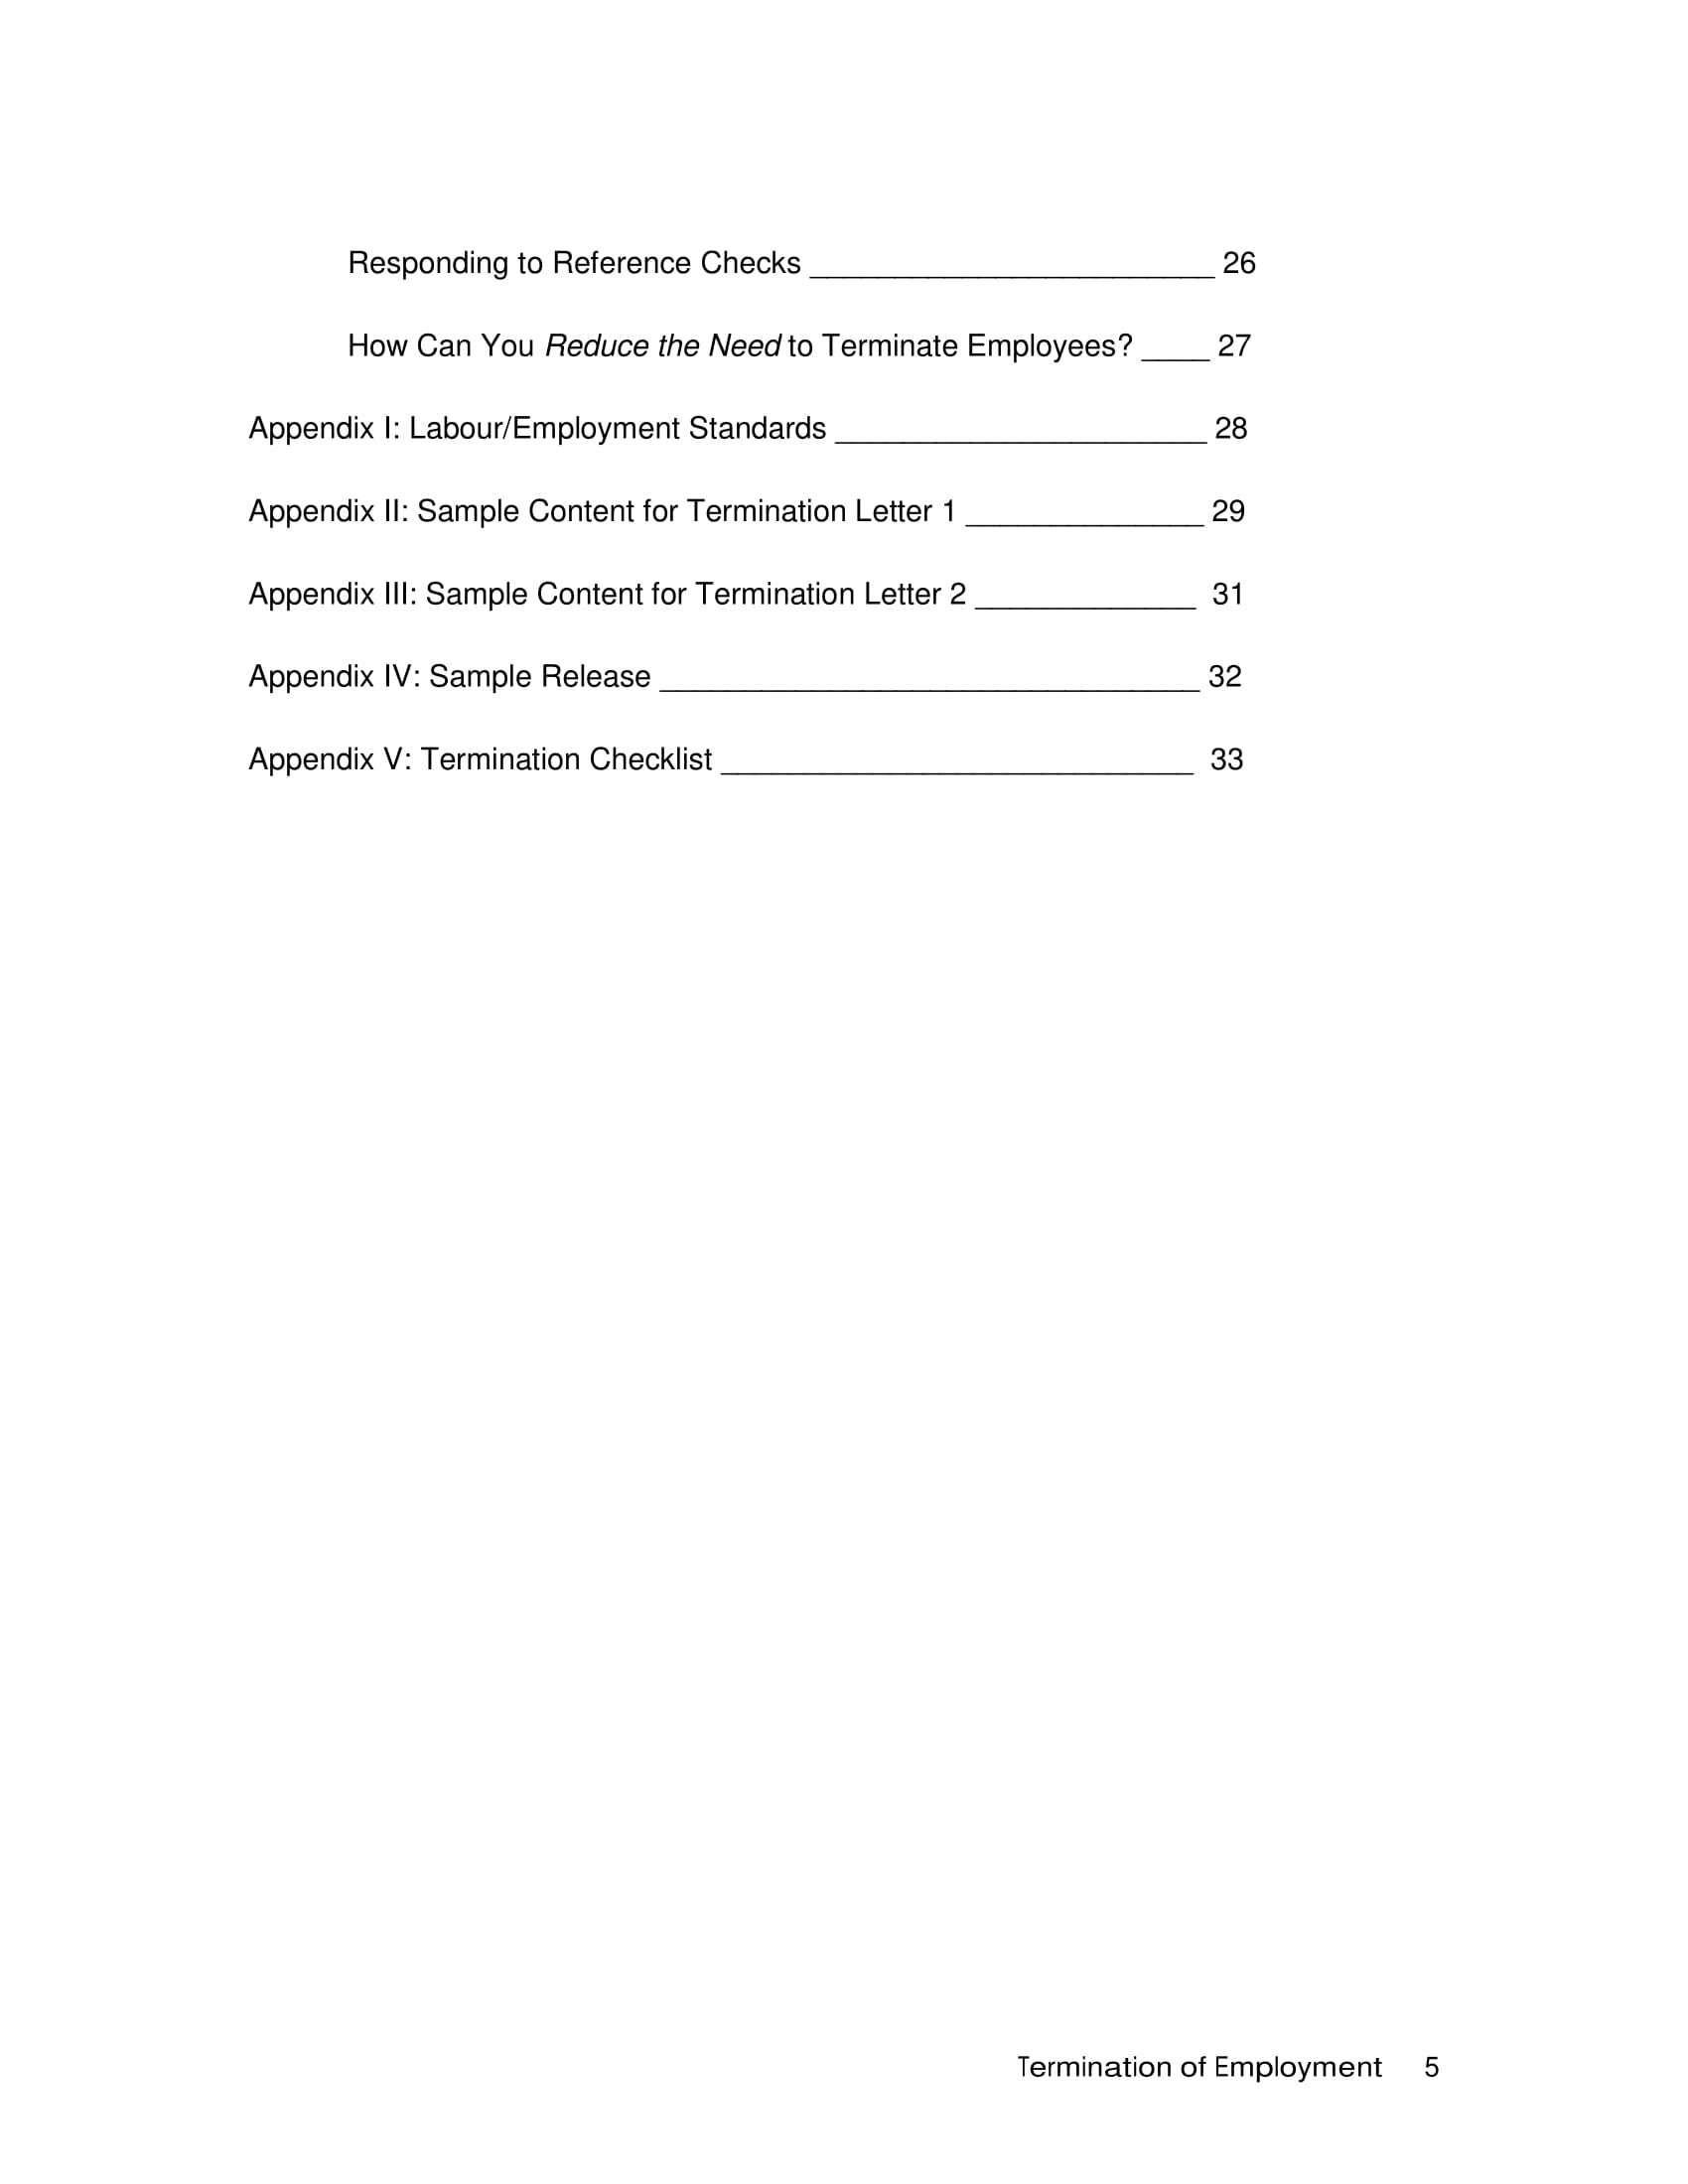 Termination Meeting Checklist Examples  Pdf